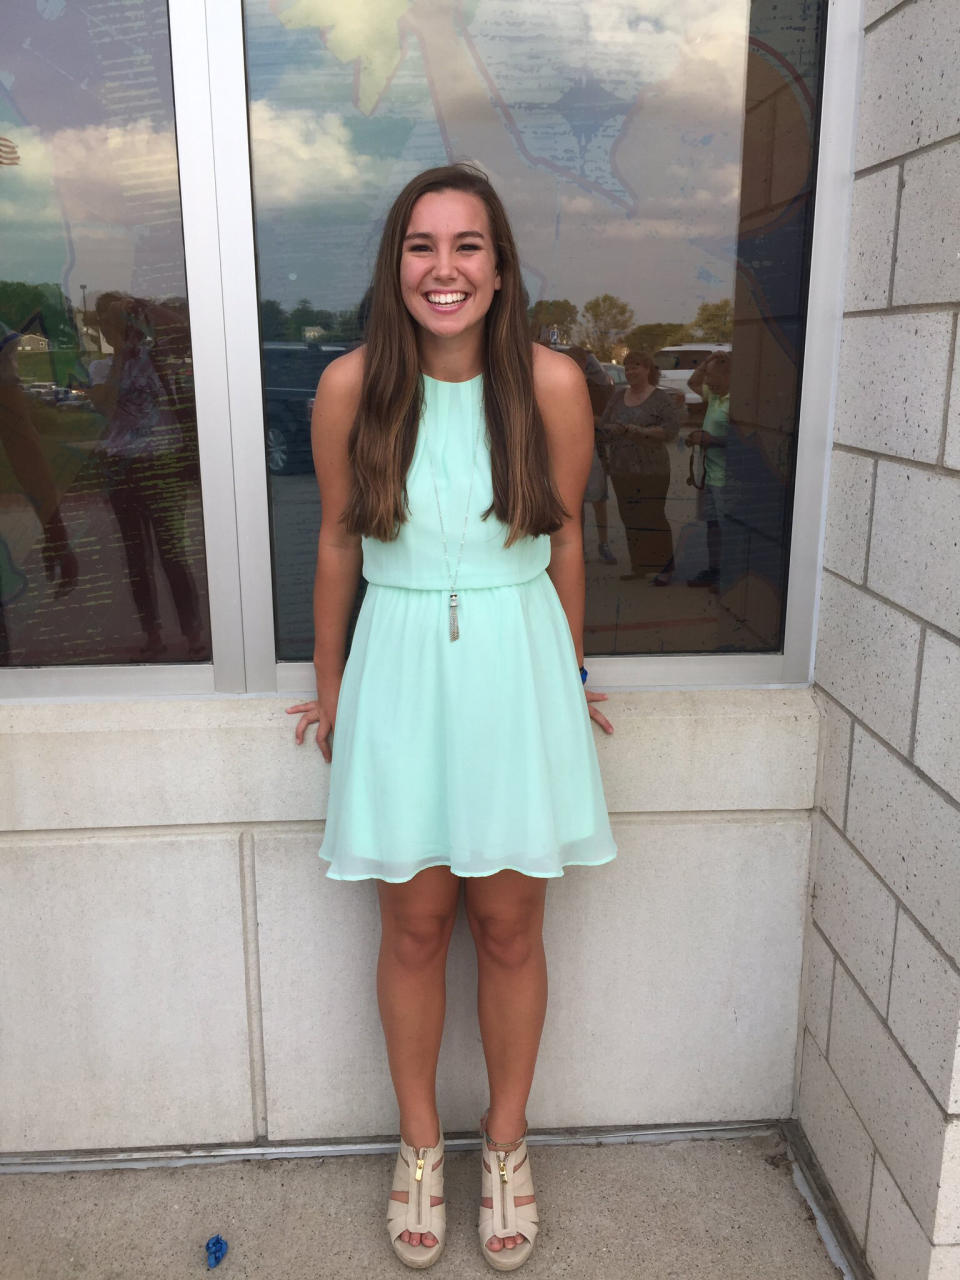 Mollie Tibbetts poses for a picture in September 2016 during Homecoming festivities at BGM High School in her hometown of Brooklyn, Iowa. Cristhian Bahena Rivera, the man charged with killing Tibbetts while she was out for a run in July 2018, will stand trial for first-degree murder on Monday, May 17 in Davenport, Iowa. (Kim Calderwood via AP)